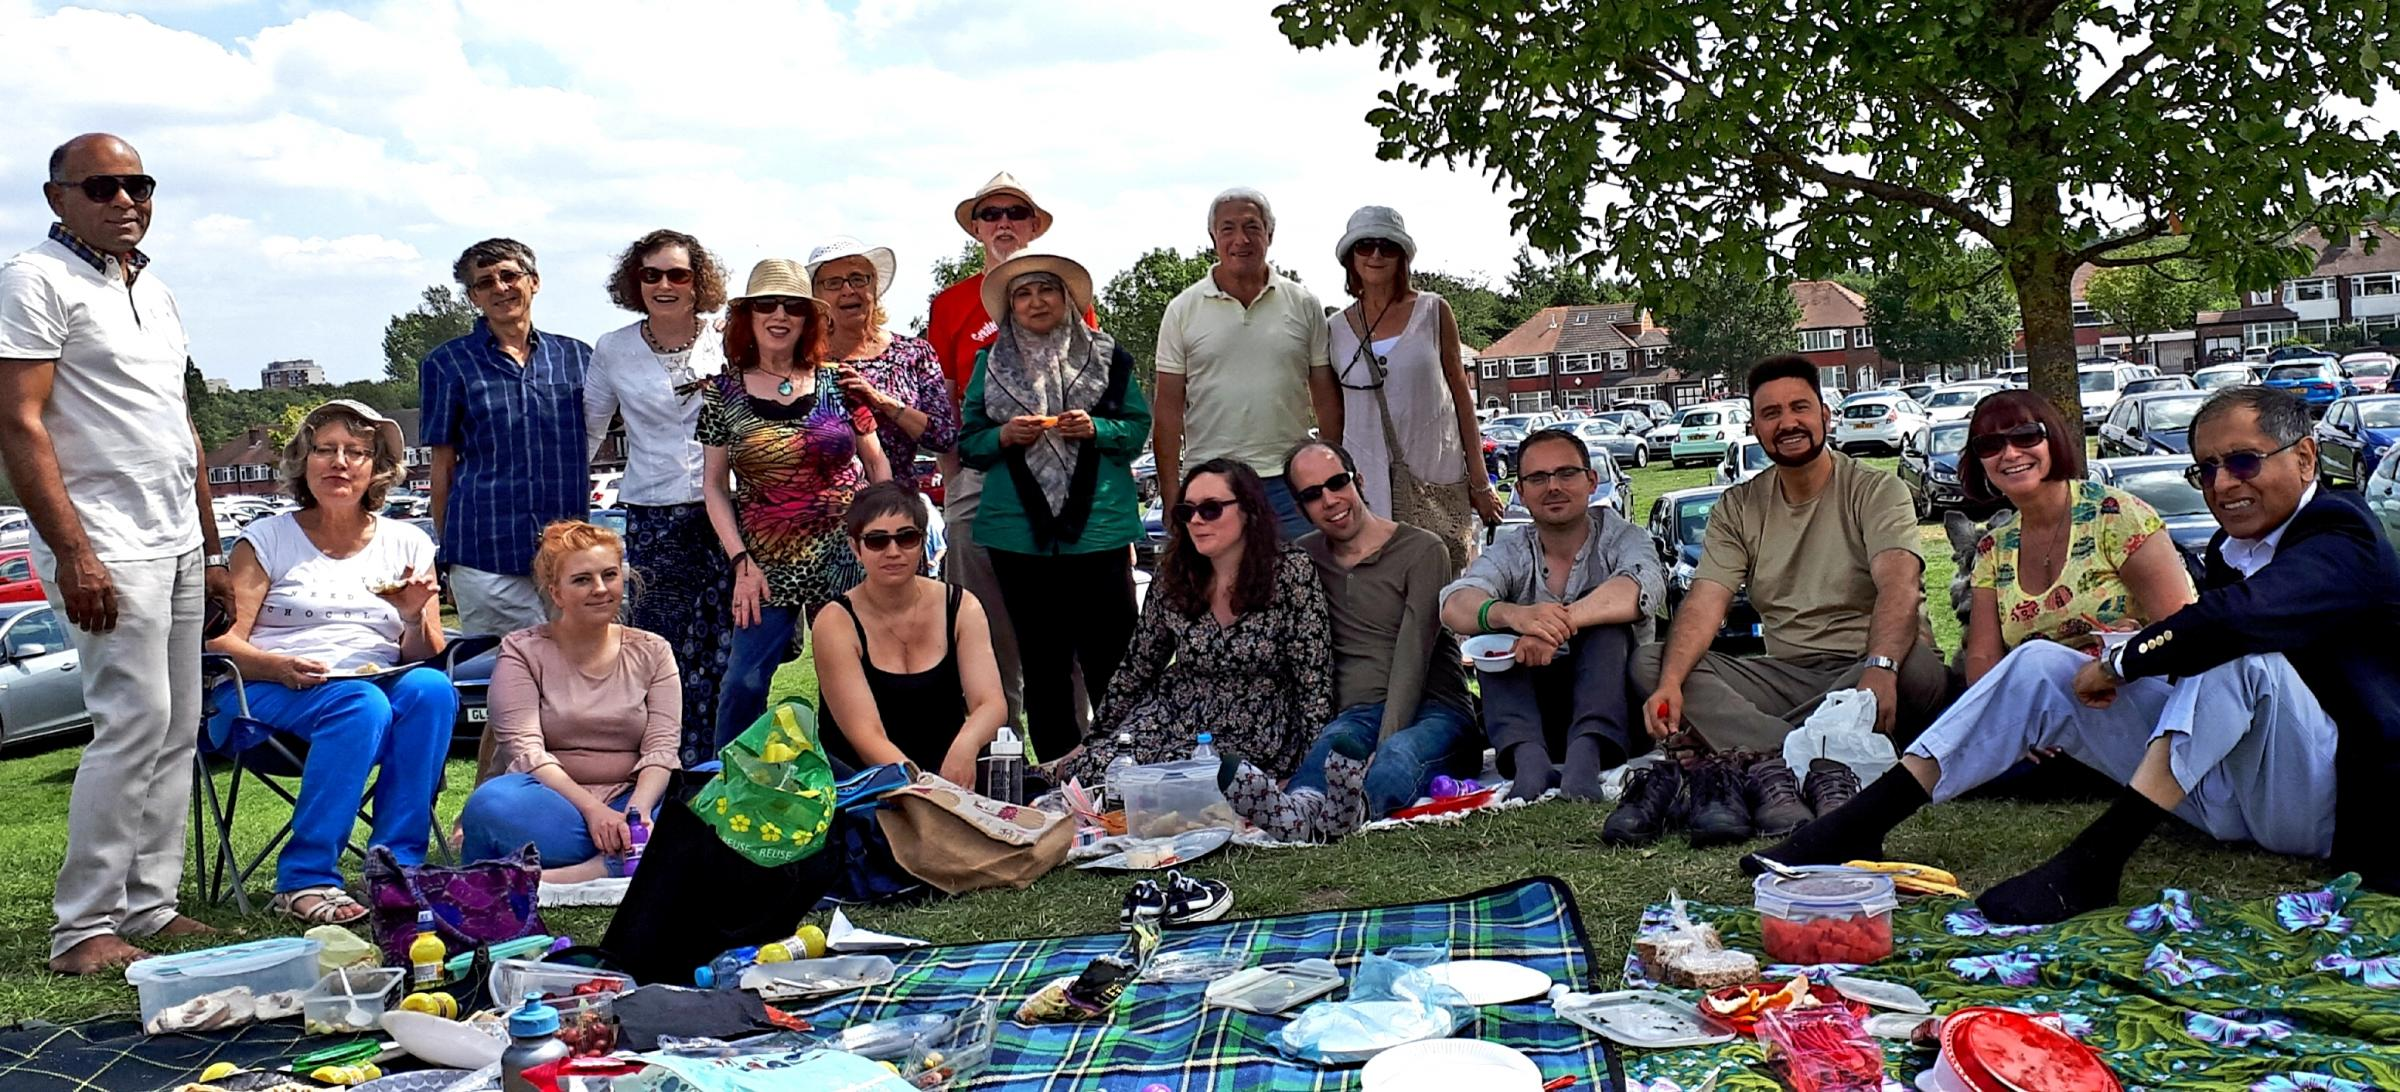 Picnickers at the annual Muslim-Jewish Forum Picnic in Heaton Park